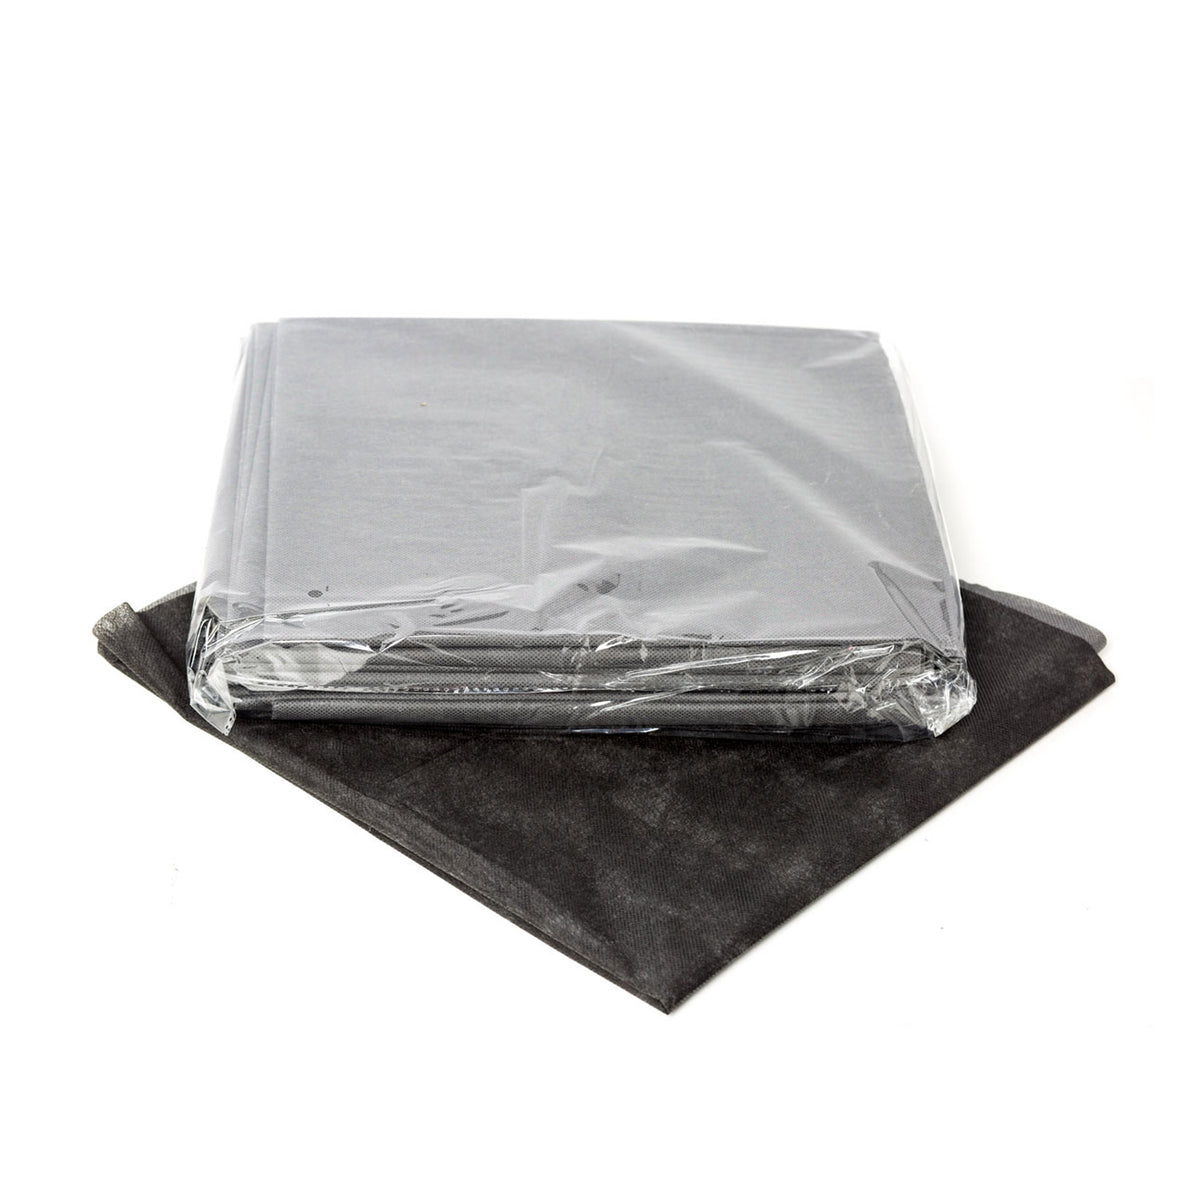 Jet Black Supply - Bed Sheets